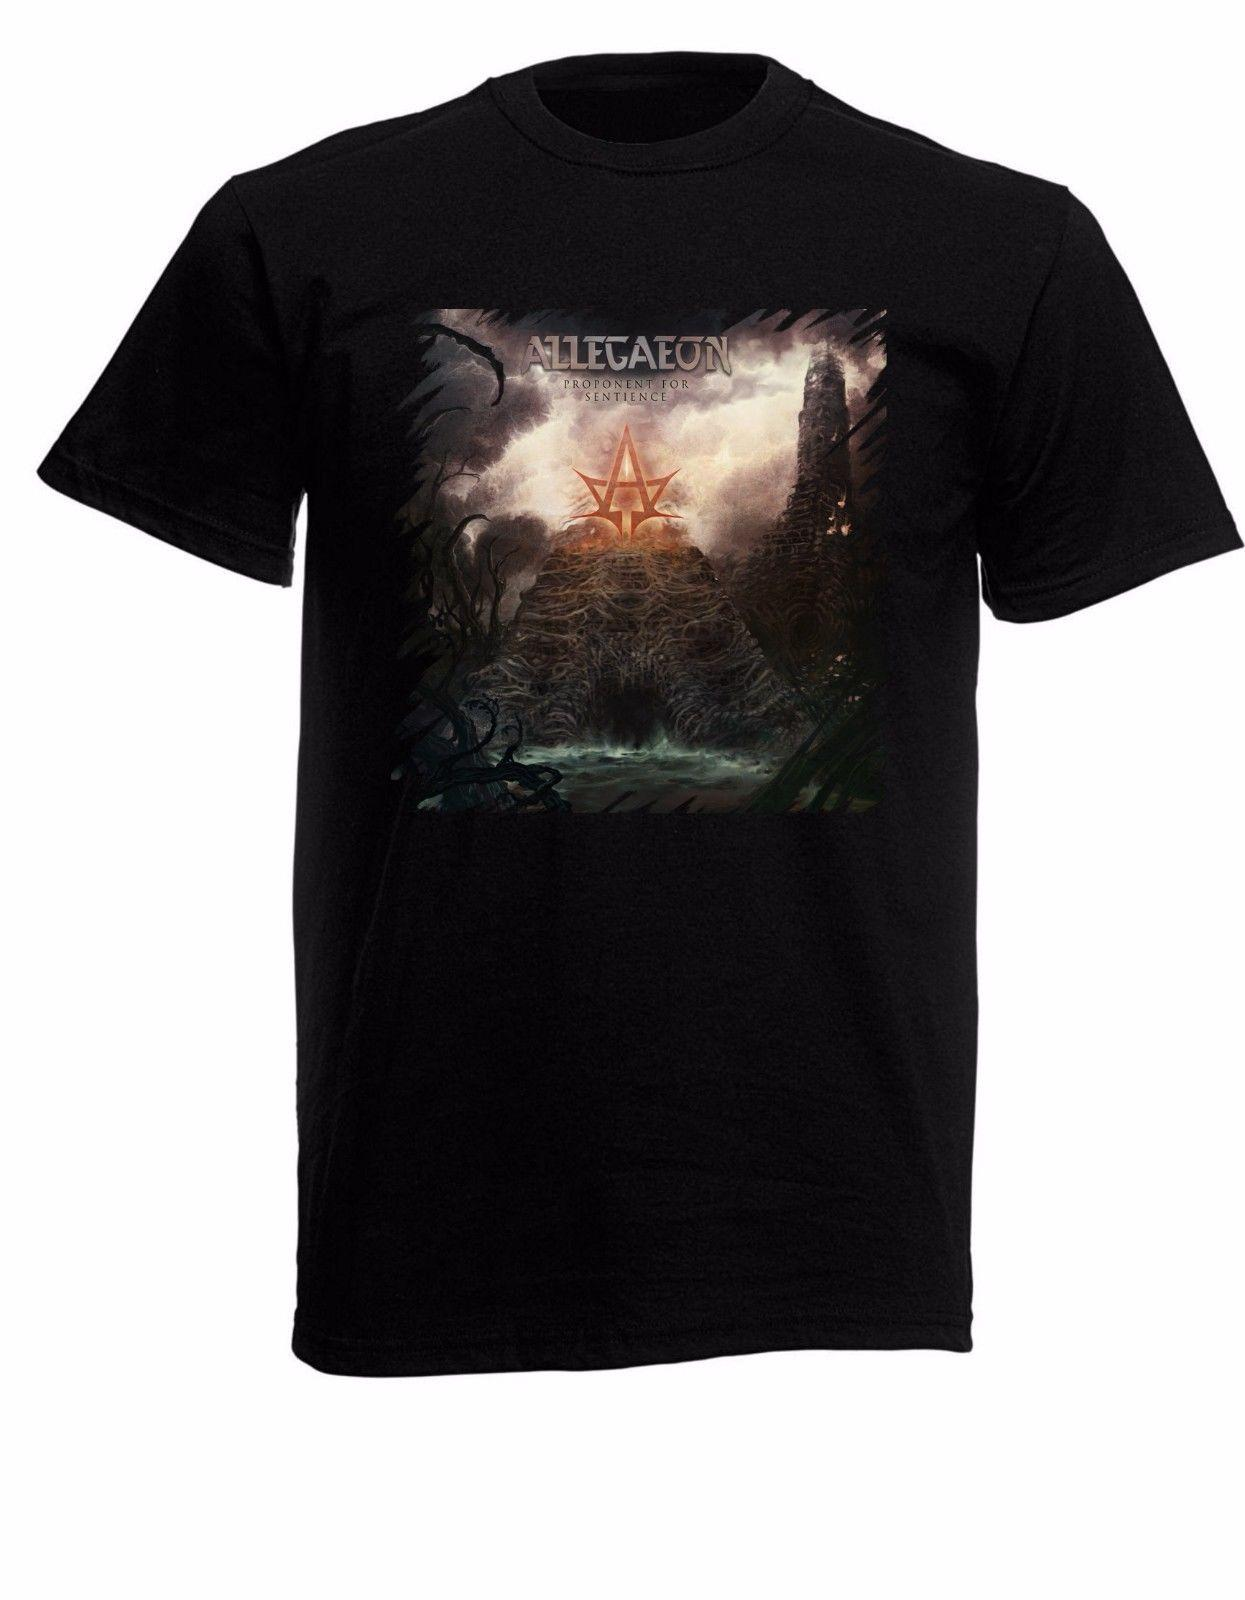 Allegaeon Proponent for Sentience Mens Black Rock T-shirt NEW Sizes S-XXXL